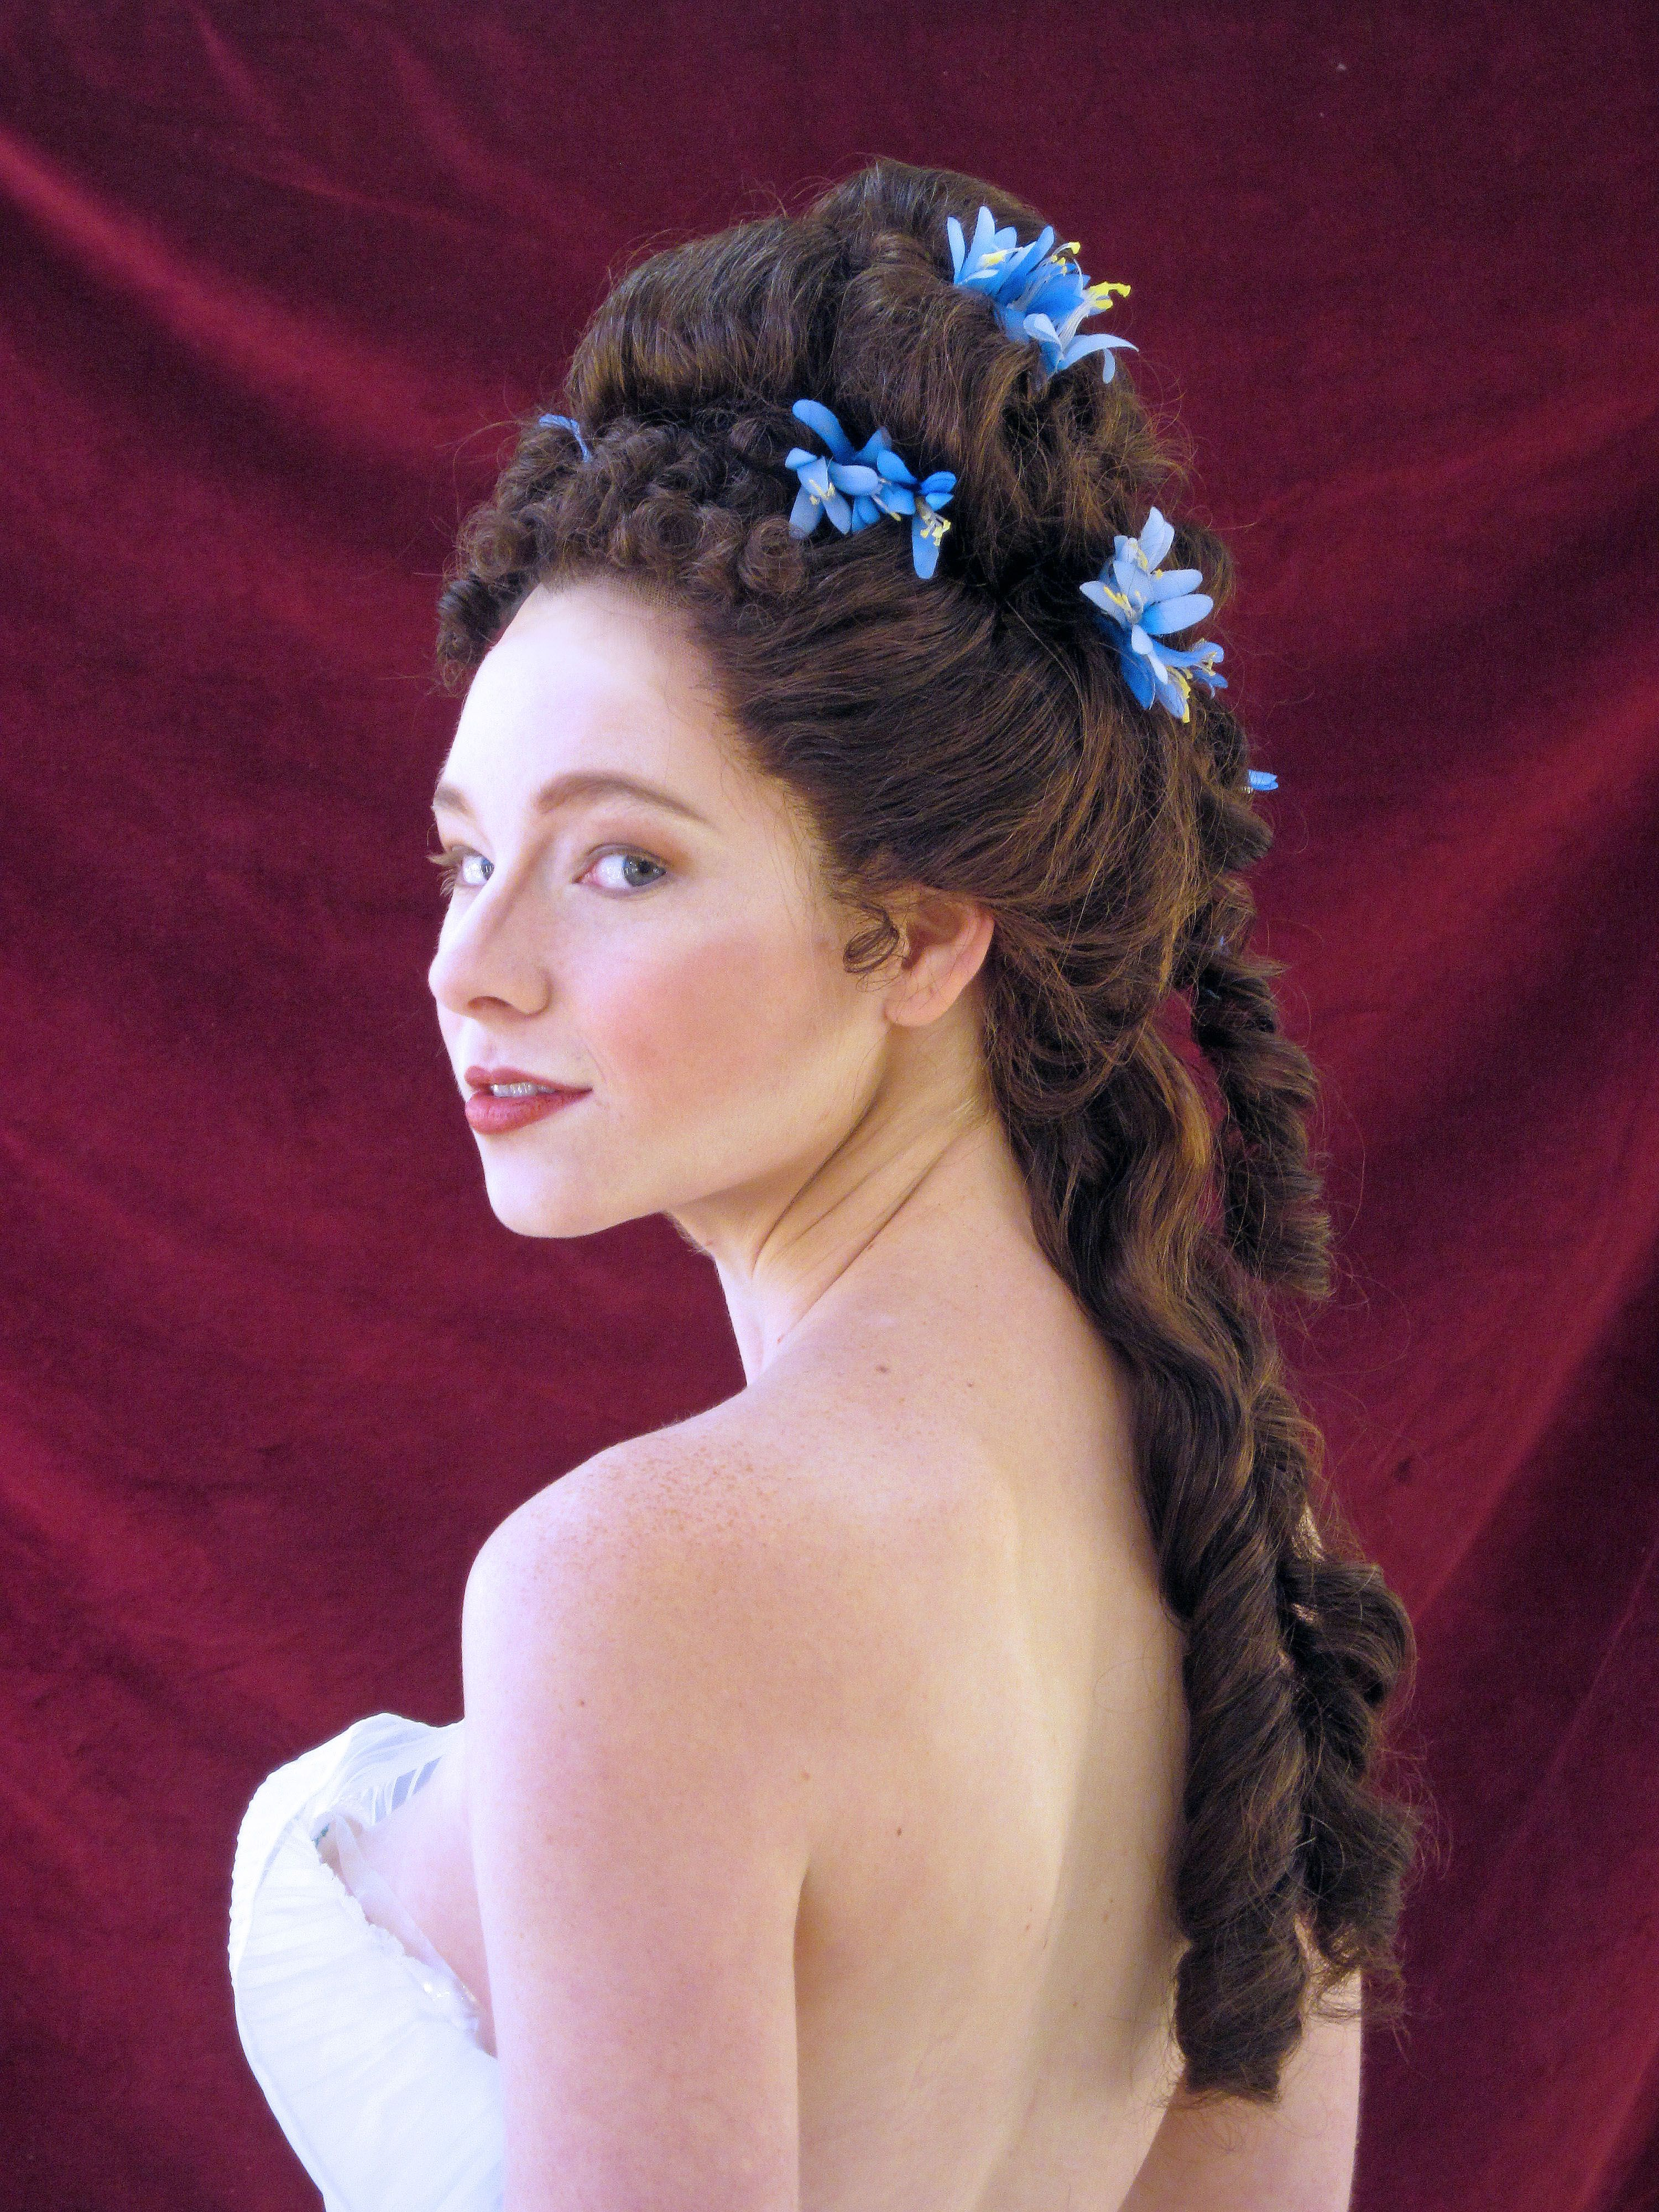 Maur 1870s/80s   Victorian hairstyles, Historical ...